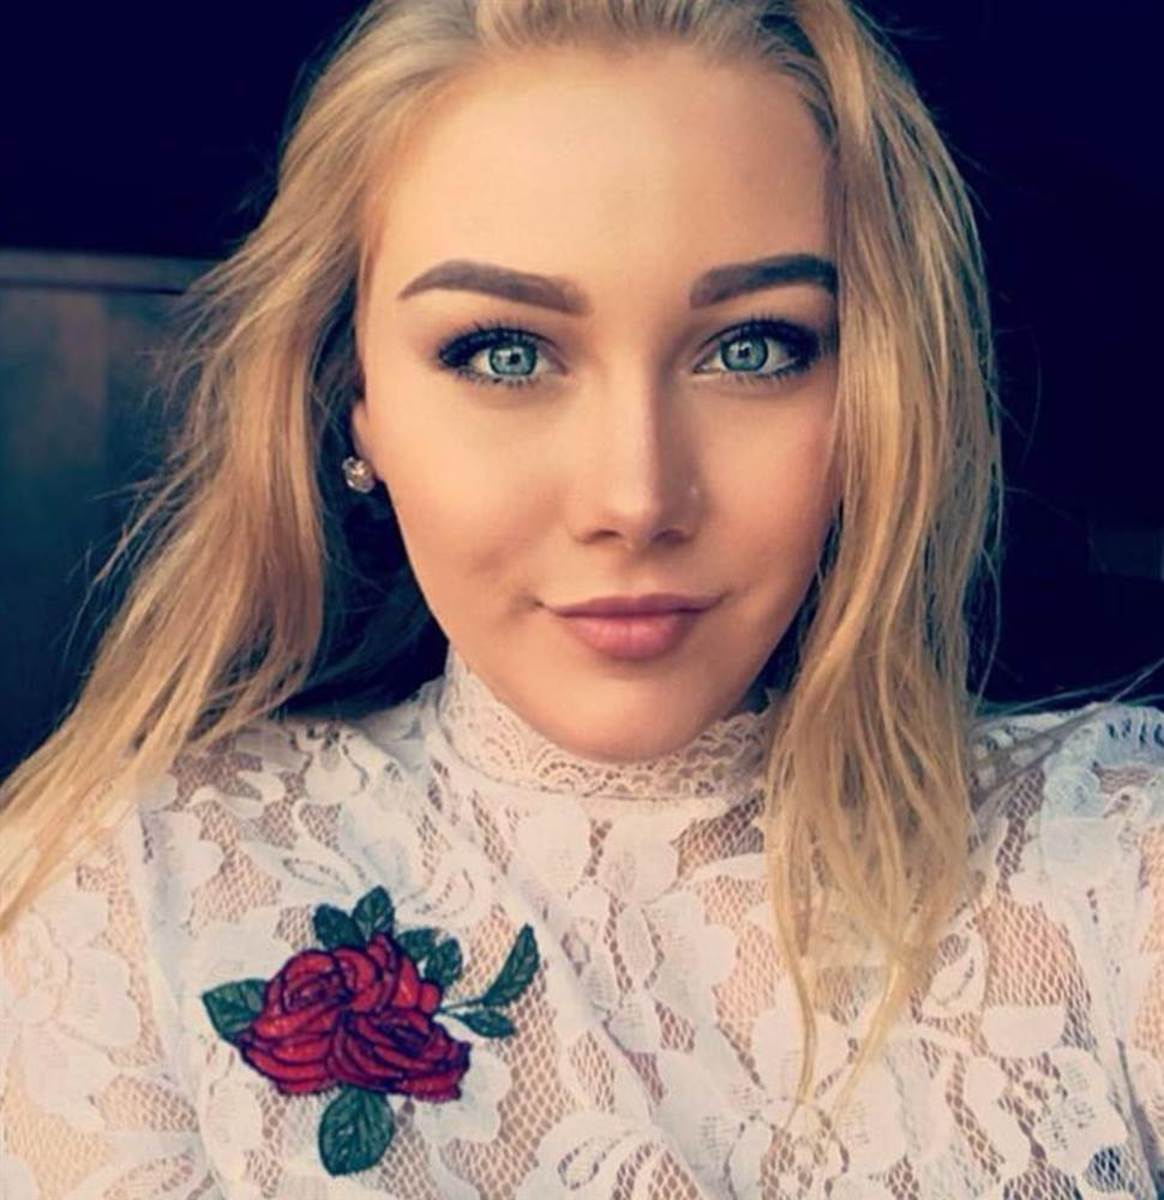 Police fear Corinna Slusser has been kidnapped into a sex trafficking ring.